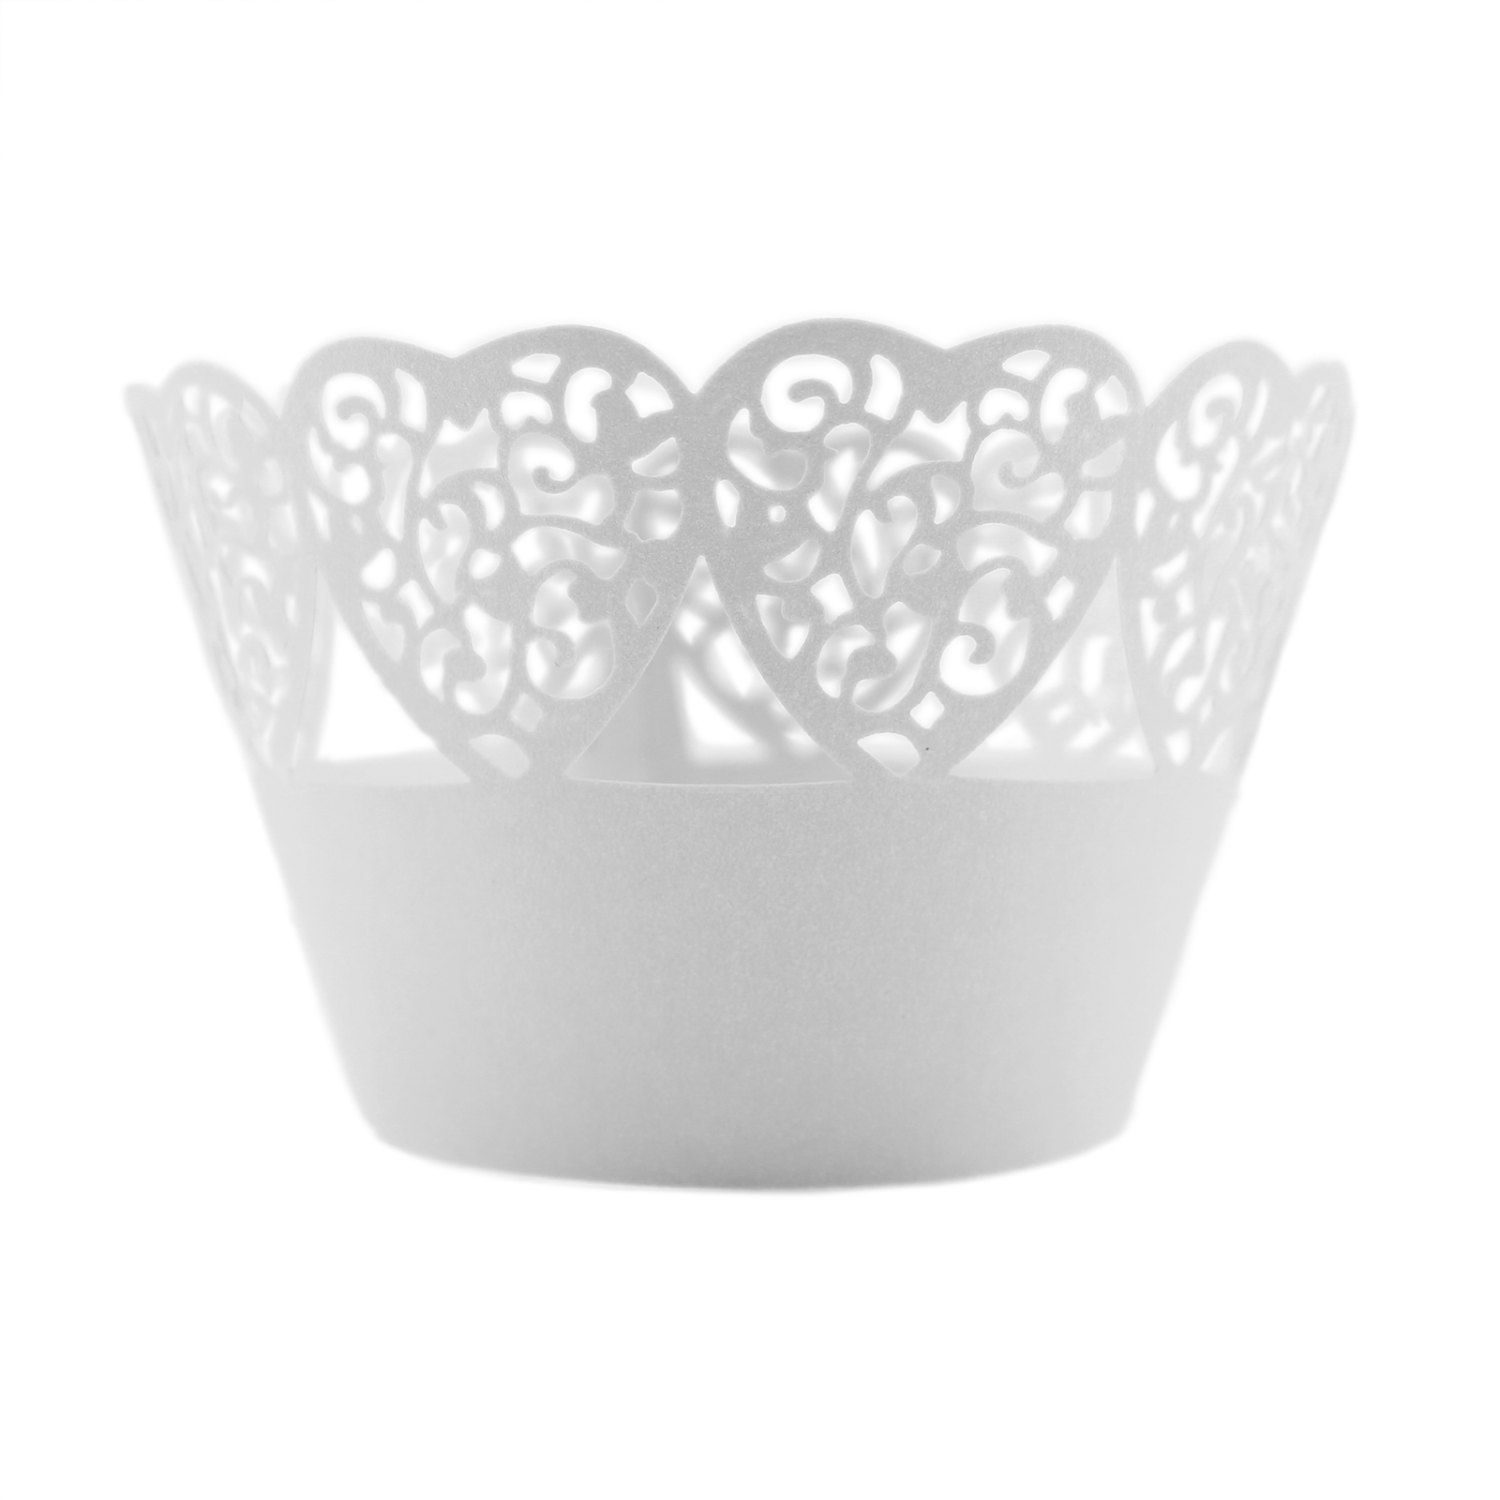 White Heart Lace Laser Cut Cupcake Wrappers Liners Baking Supplies Bakery Materials Party Decoration Valentine's Day Ideas FREE SHIPPING